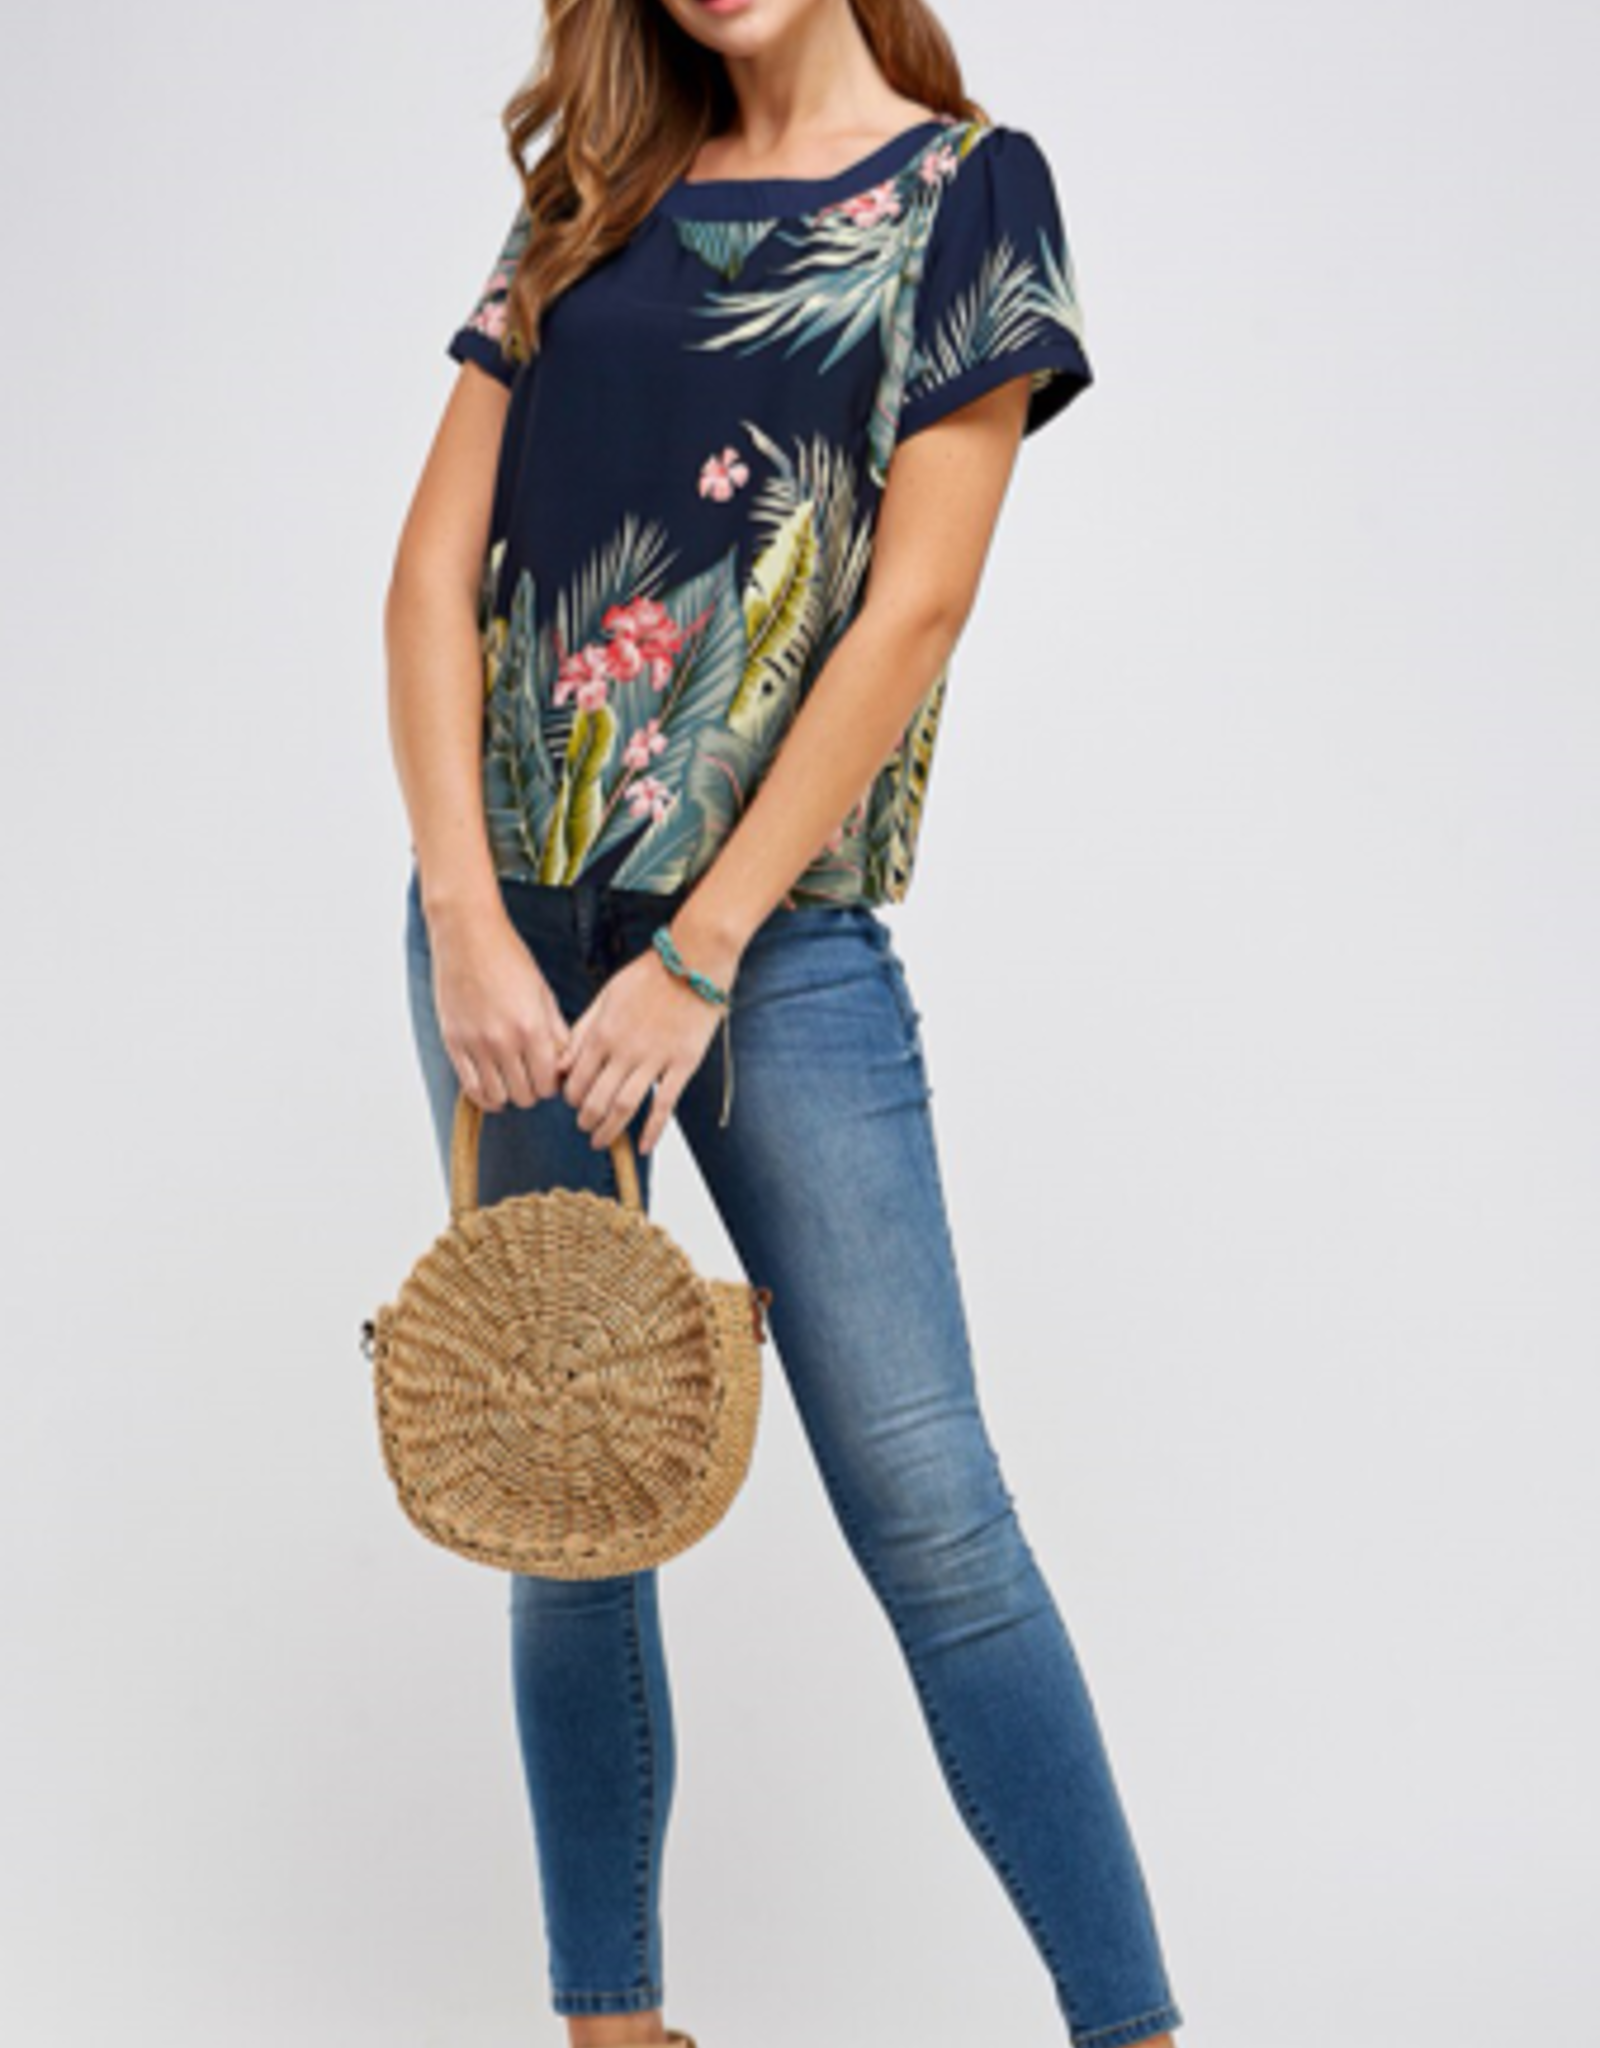 Westmoon tropical print top with boat neck